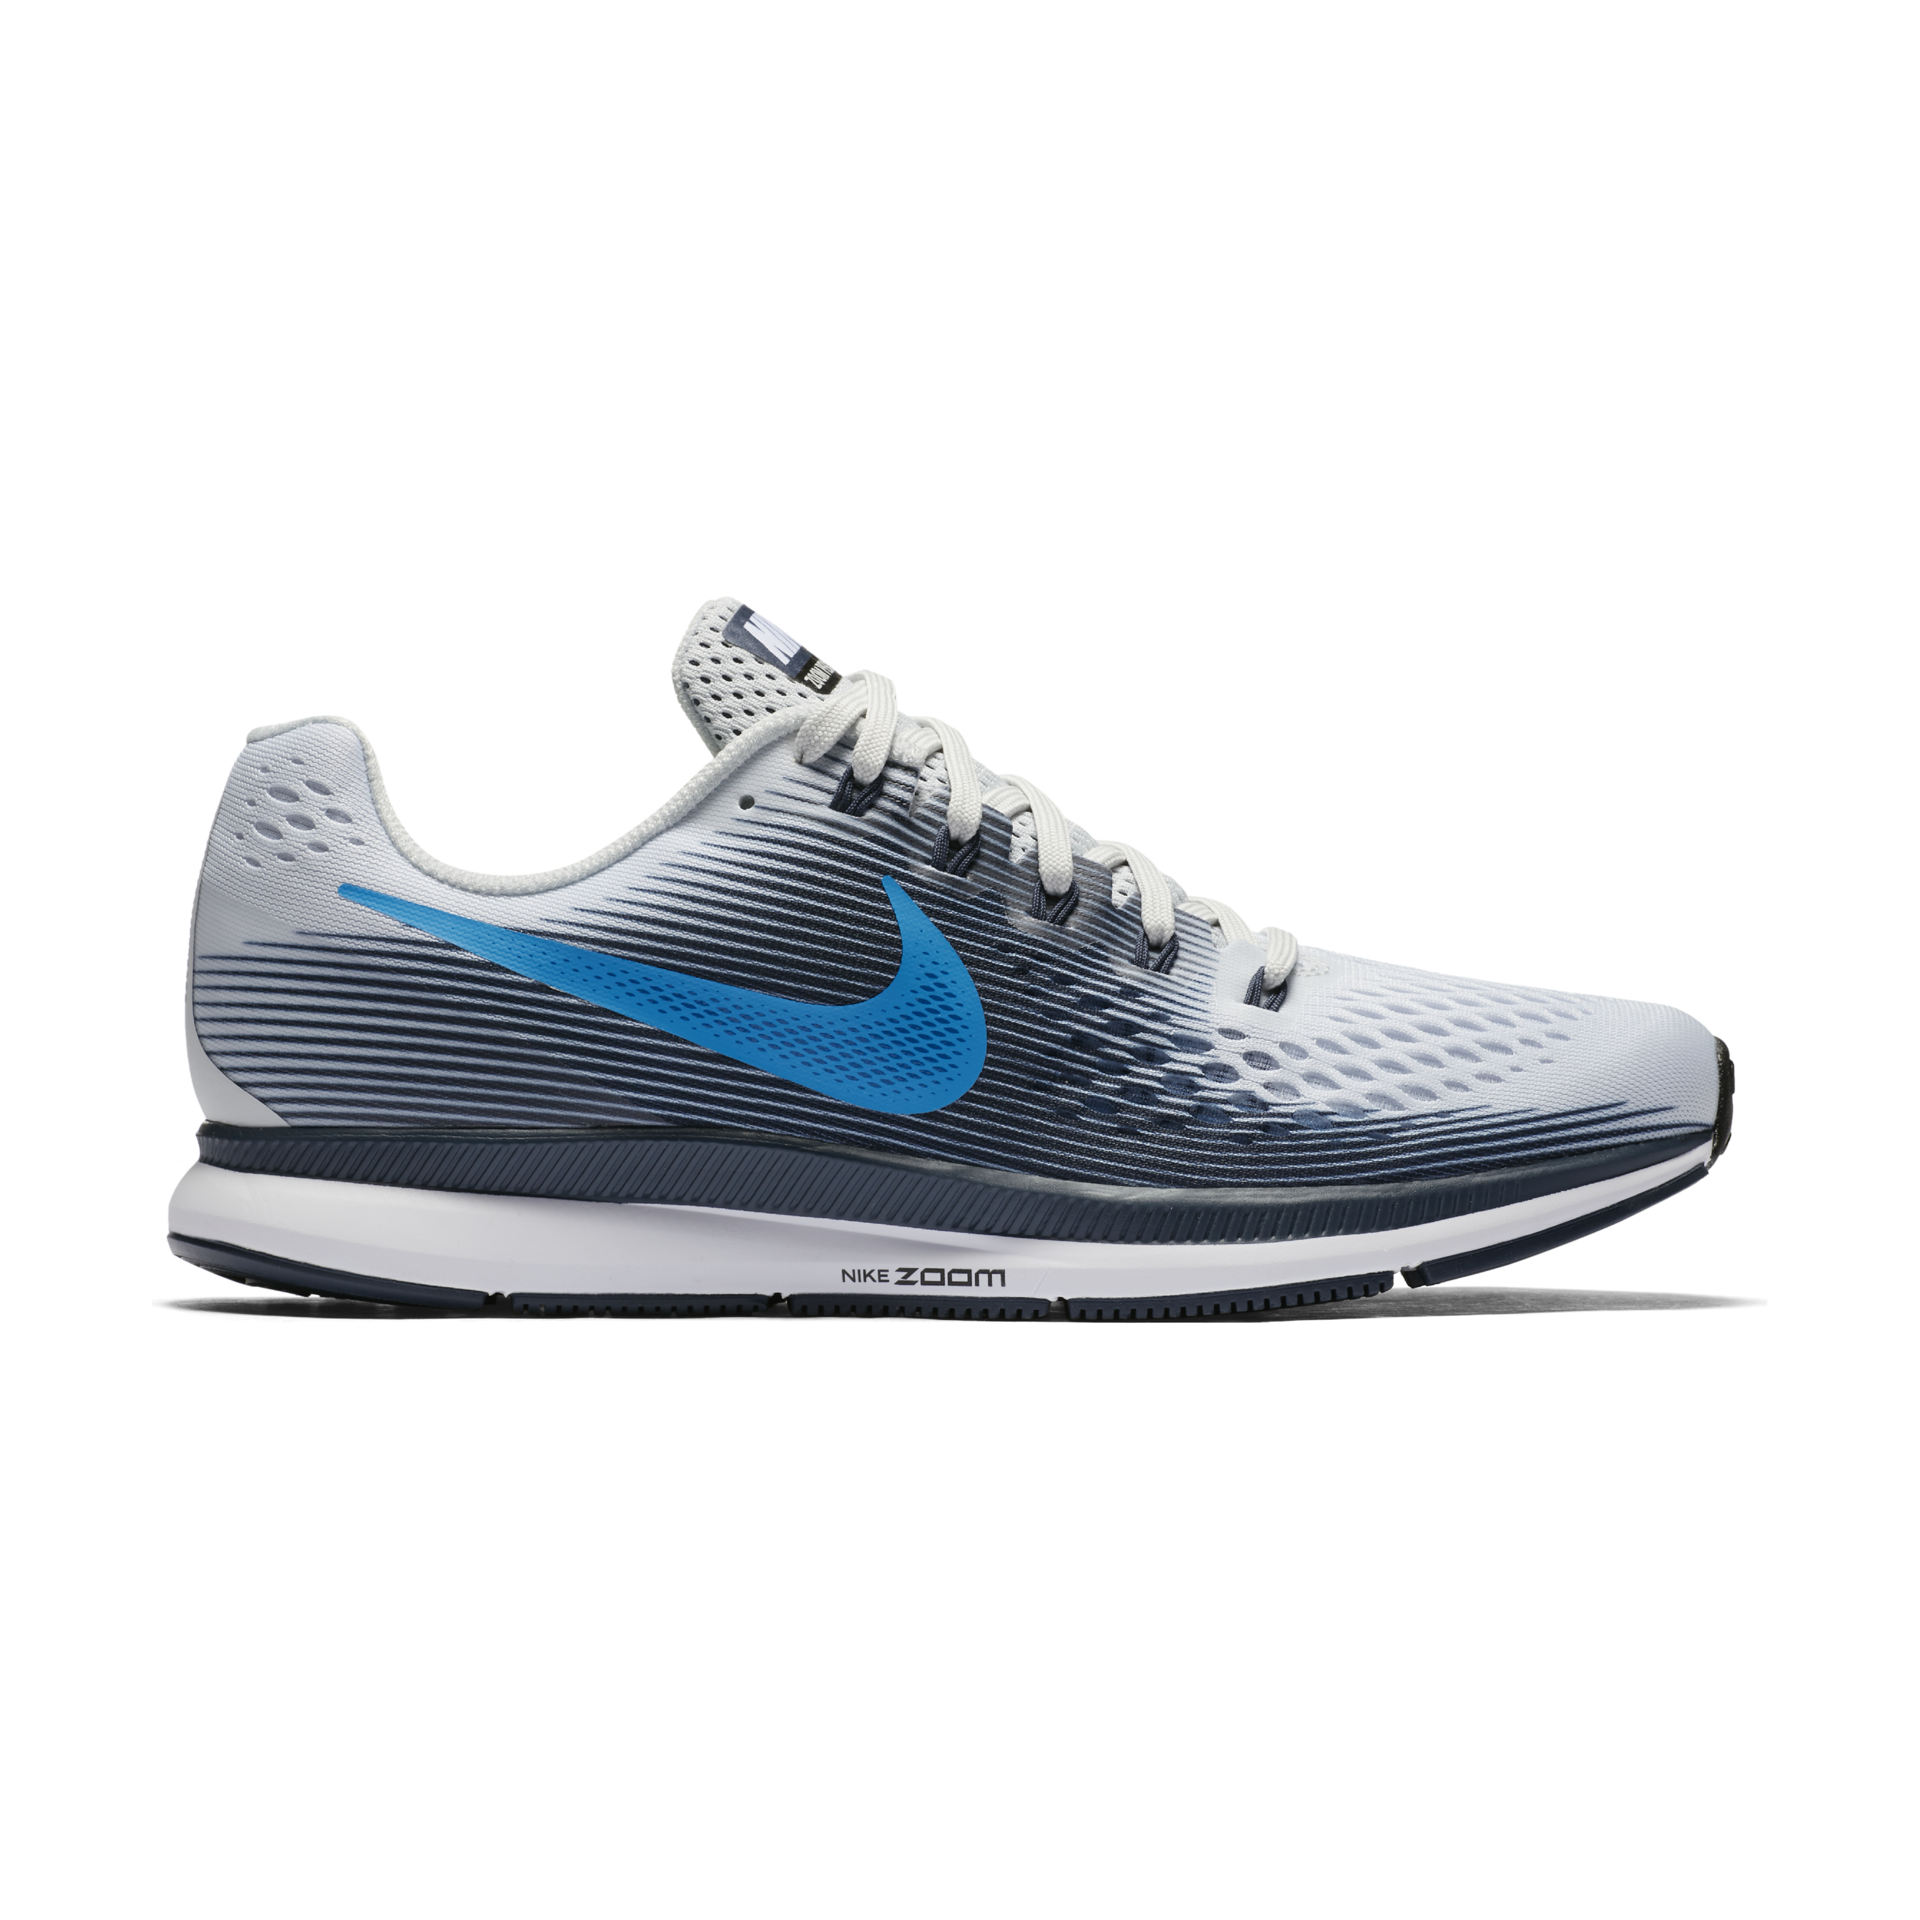 outlet moderate cost top quality NIKE AIR ZOOM PEGASUS 34 MENS - Poobie Naidoos